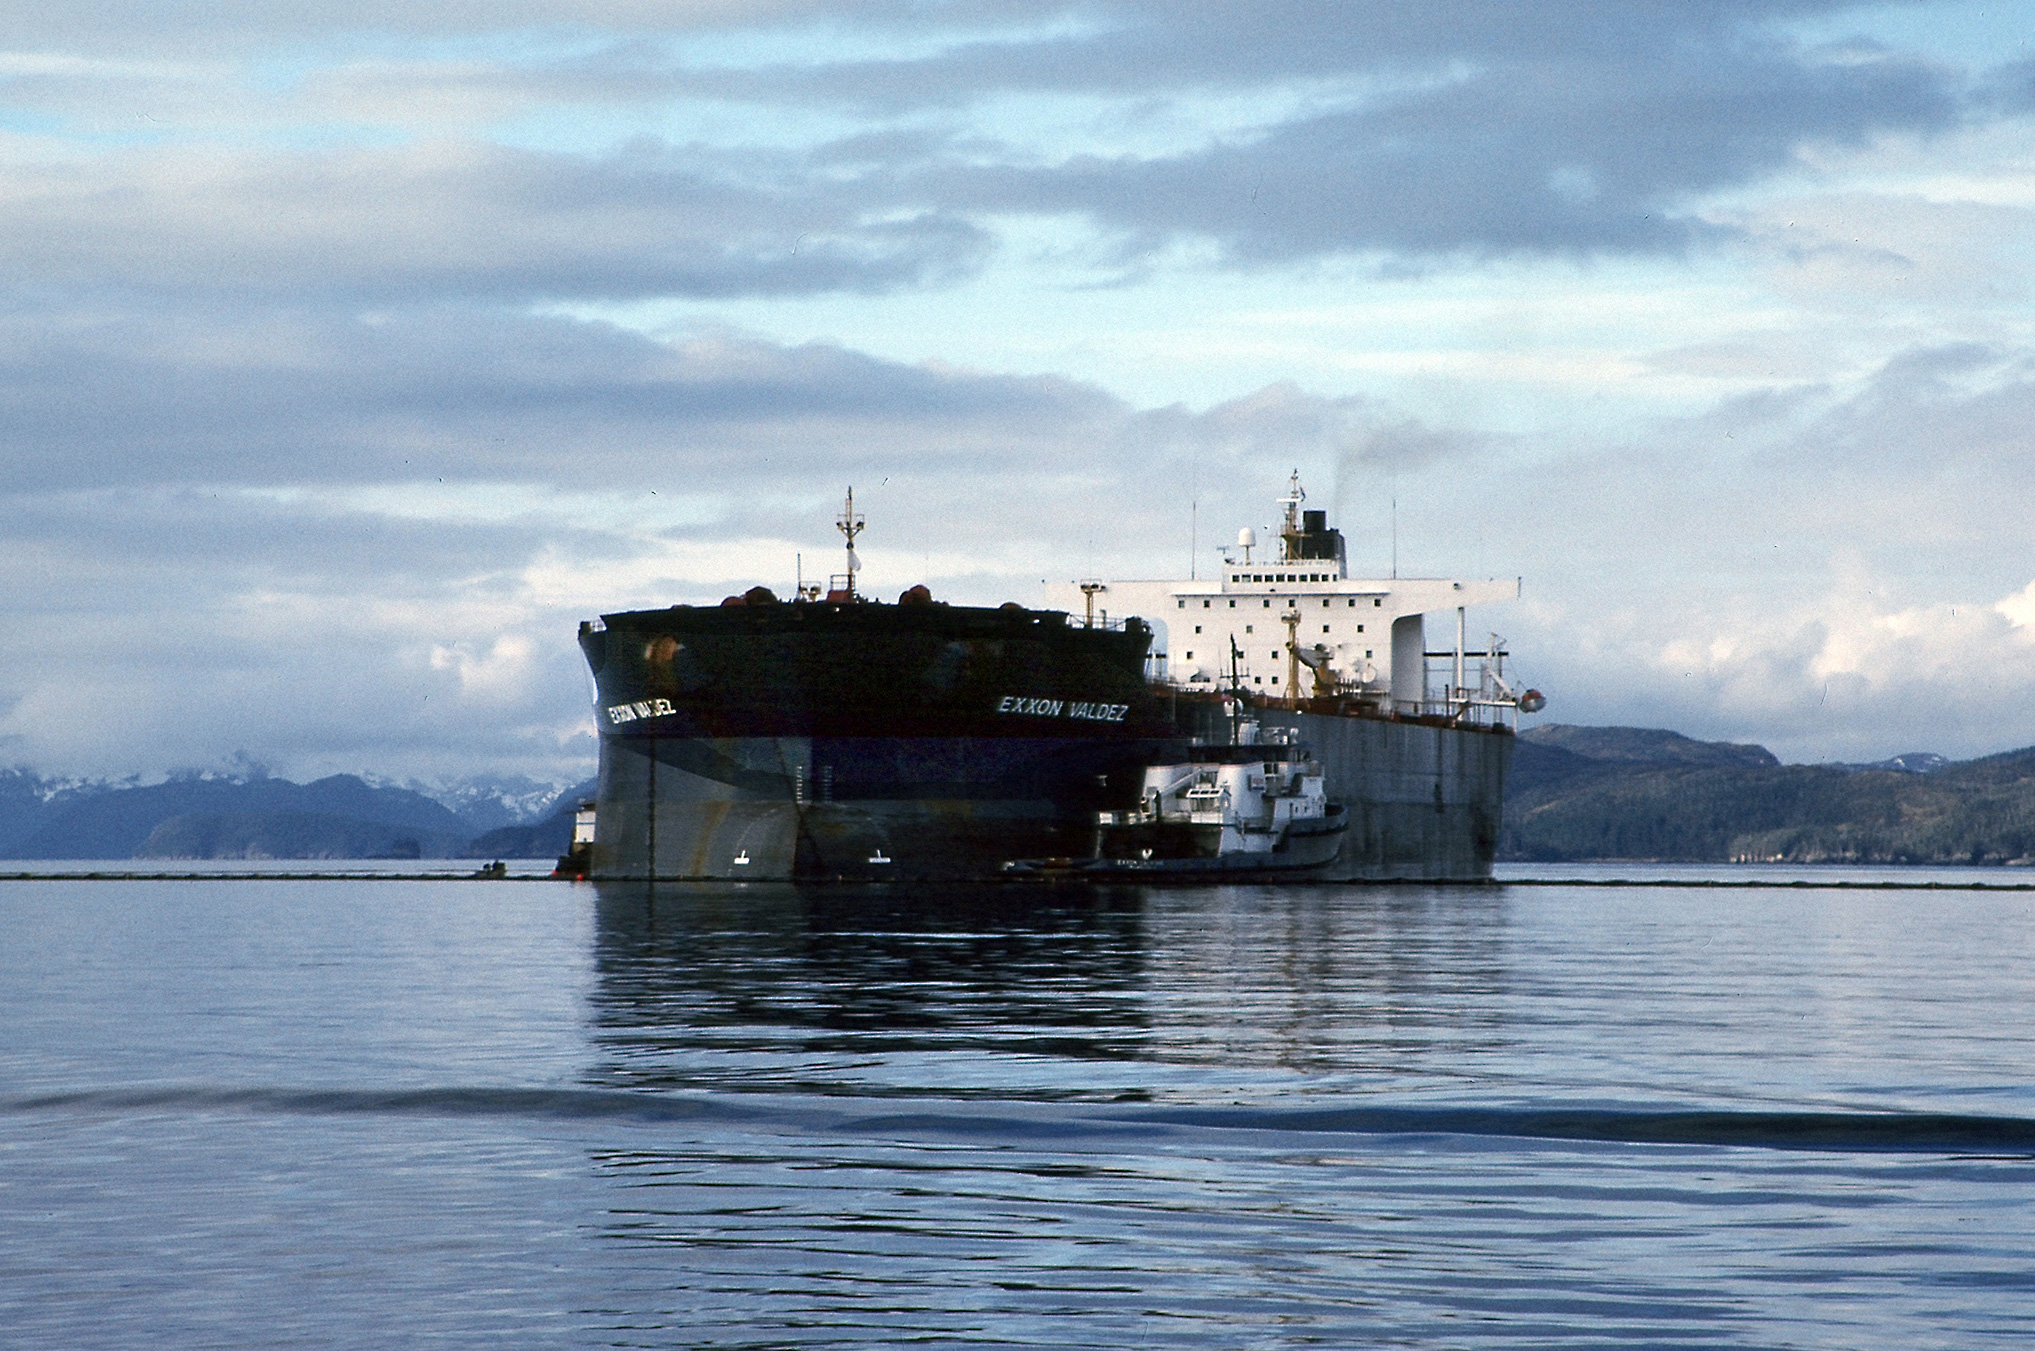 The Exxon Valdez aground; tug assisting in response.